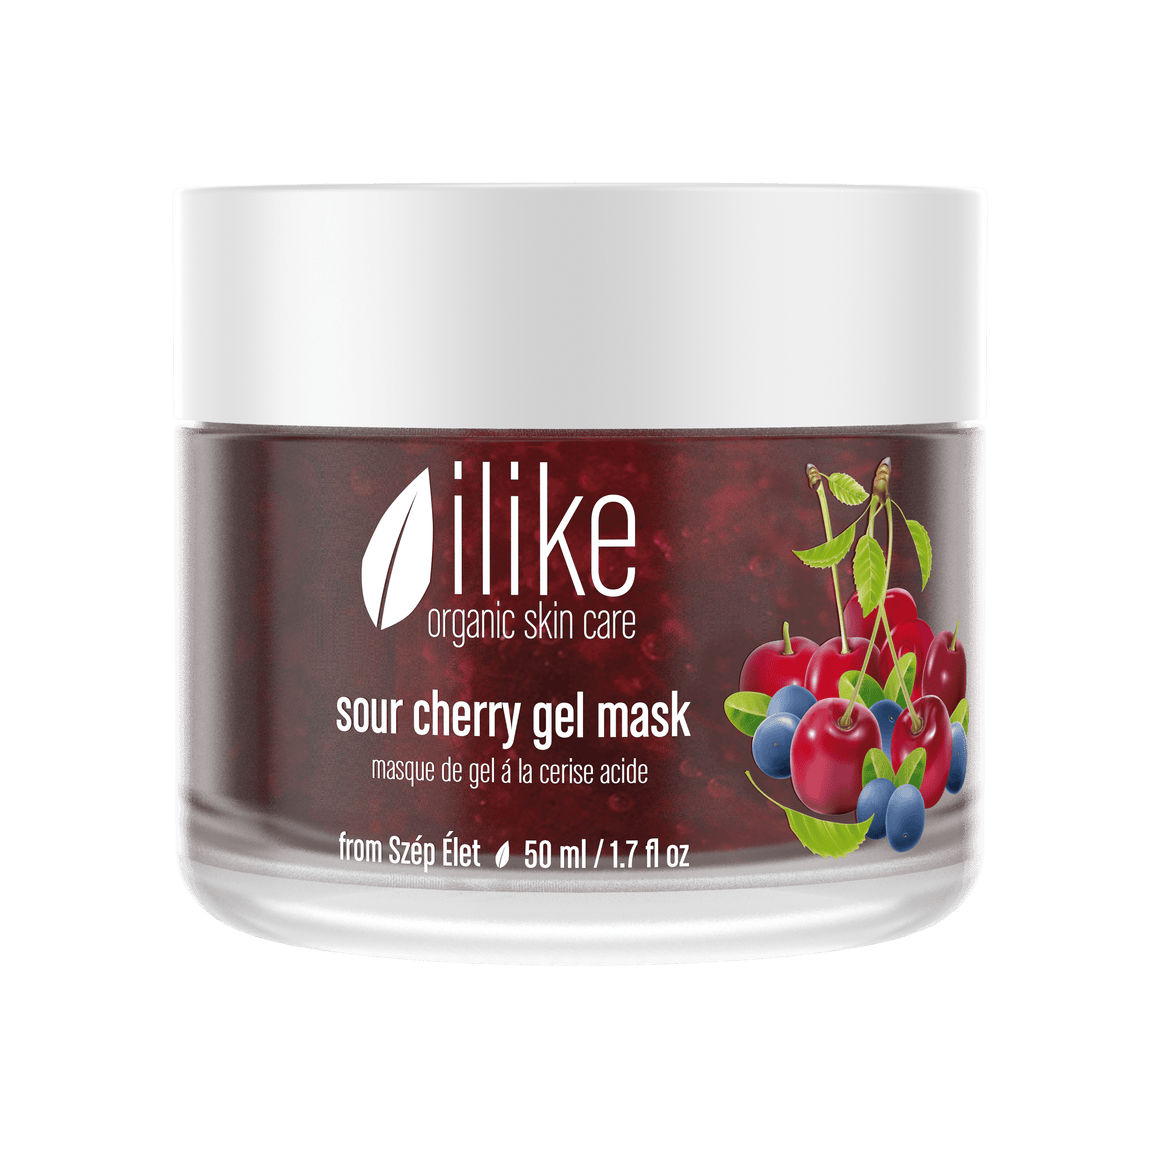 Ilike Organic Skin Care Sour Cherry Gel Mask